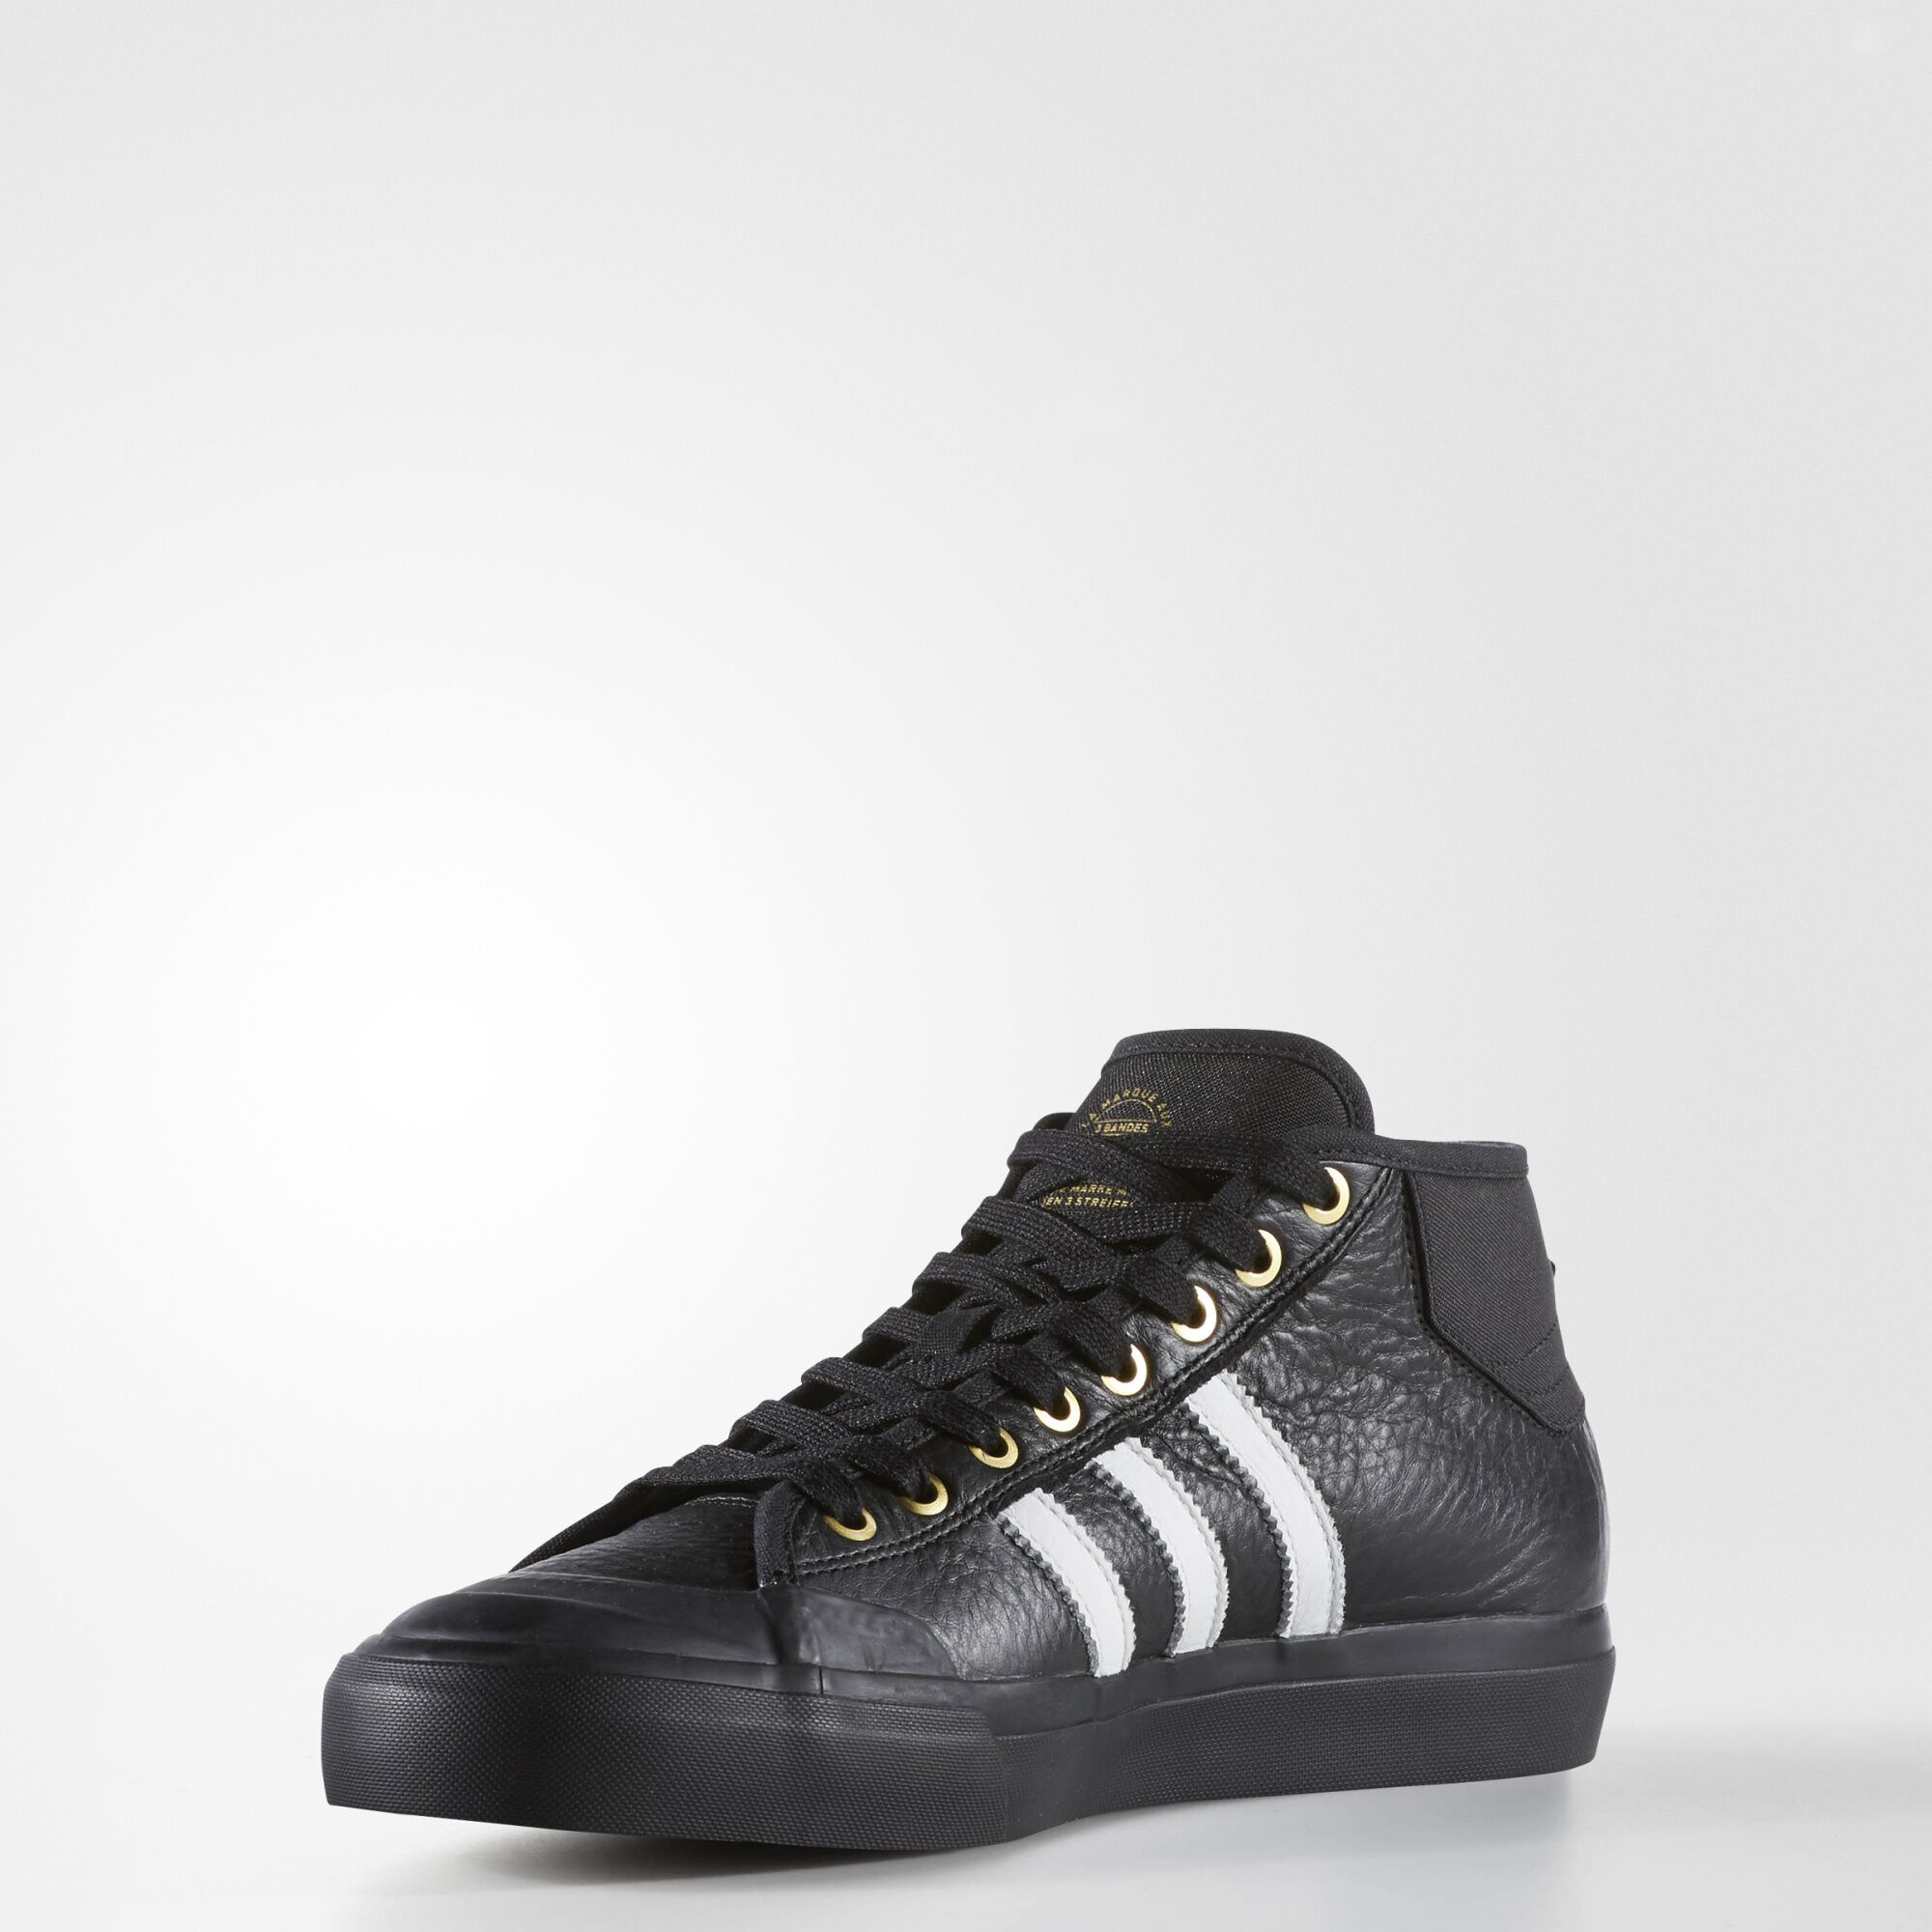 Snoop Dogg Adidas Shoes For Sale